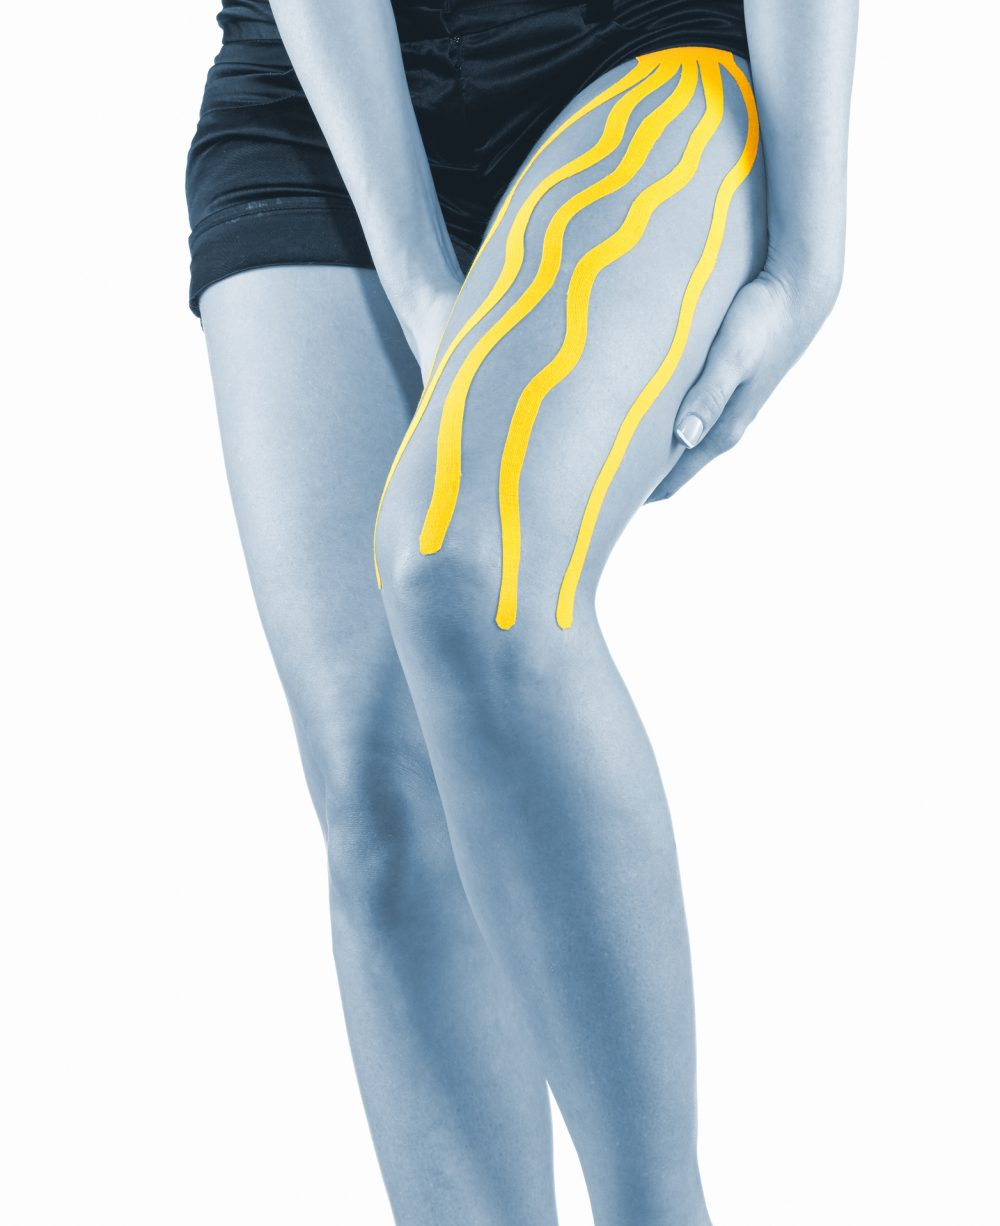 Knee treated with tape therapy